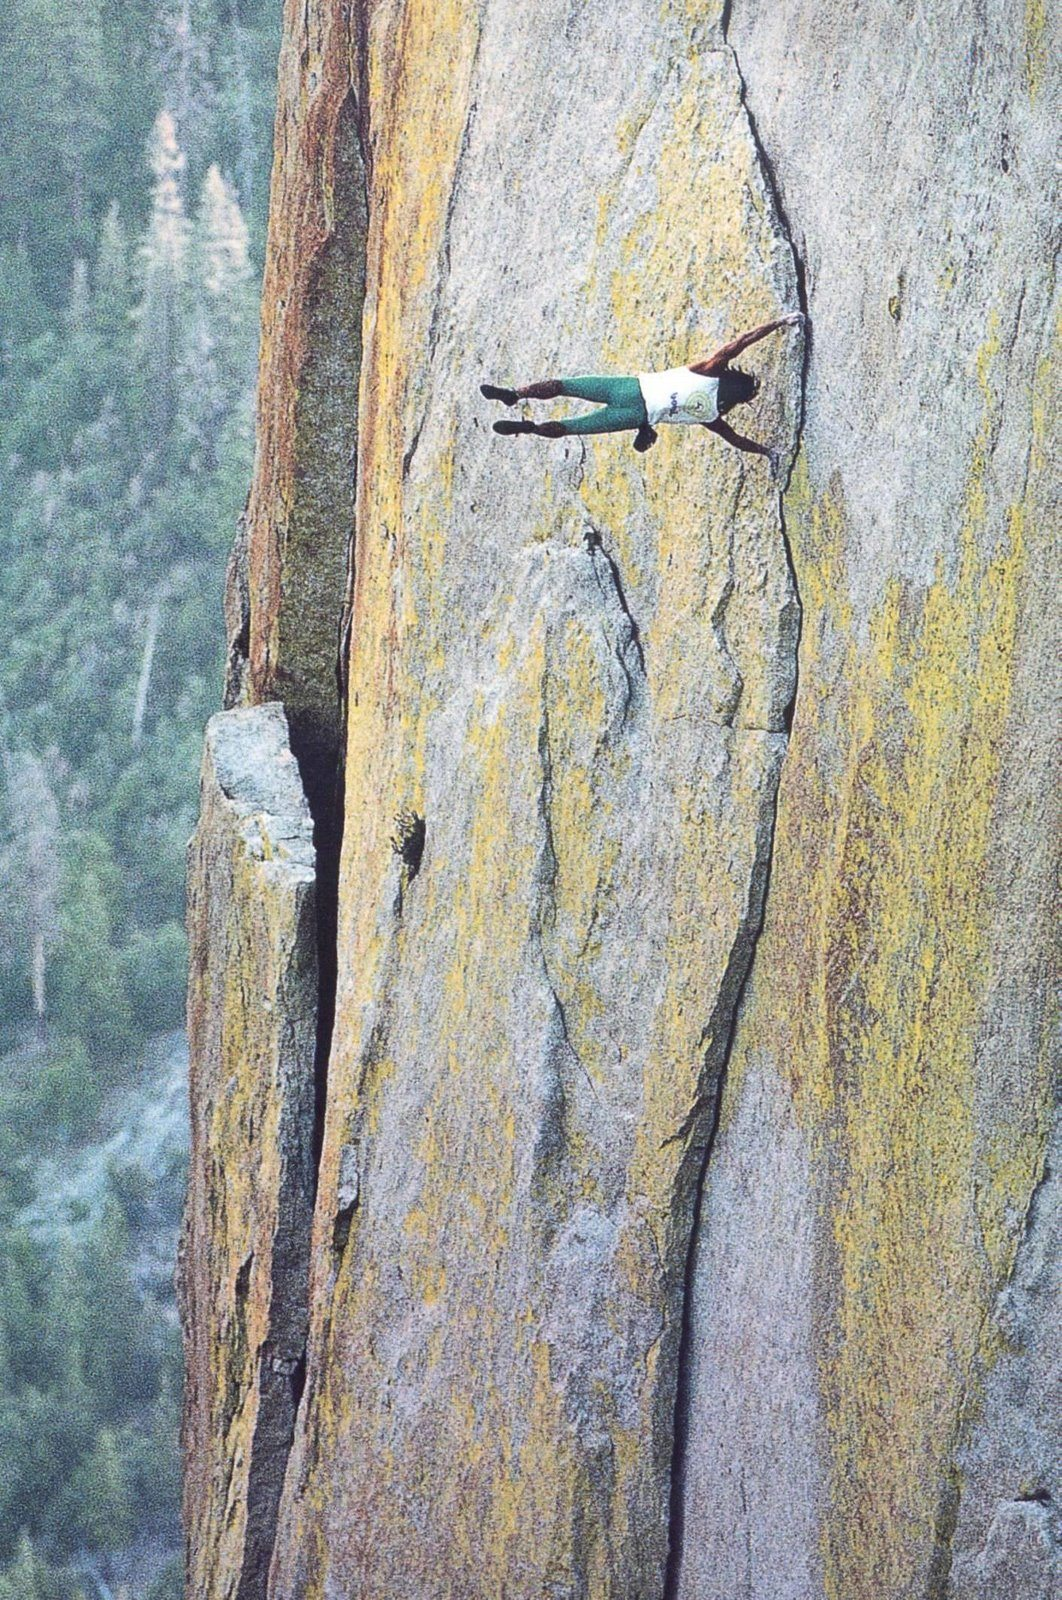 My Friend John Bachar Free Soloing, Showing Off. Fell To His Death, Free Soloing